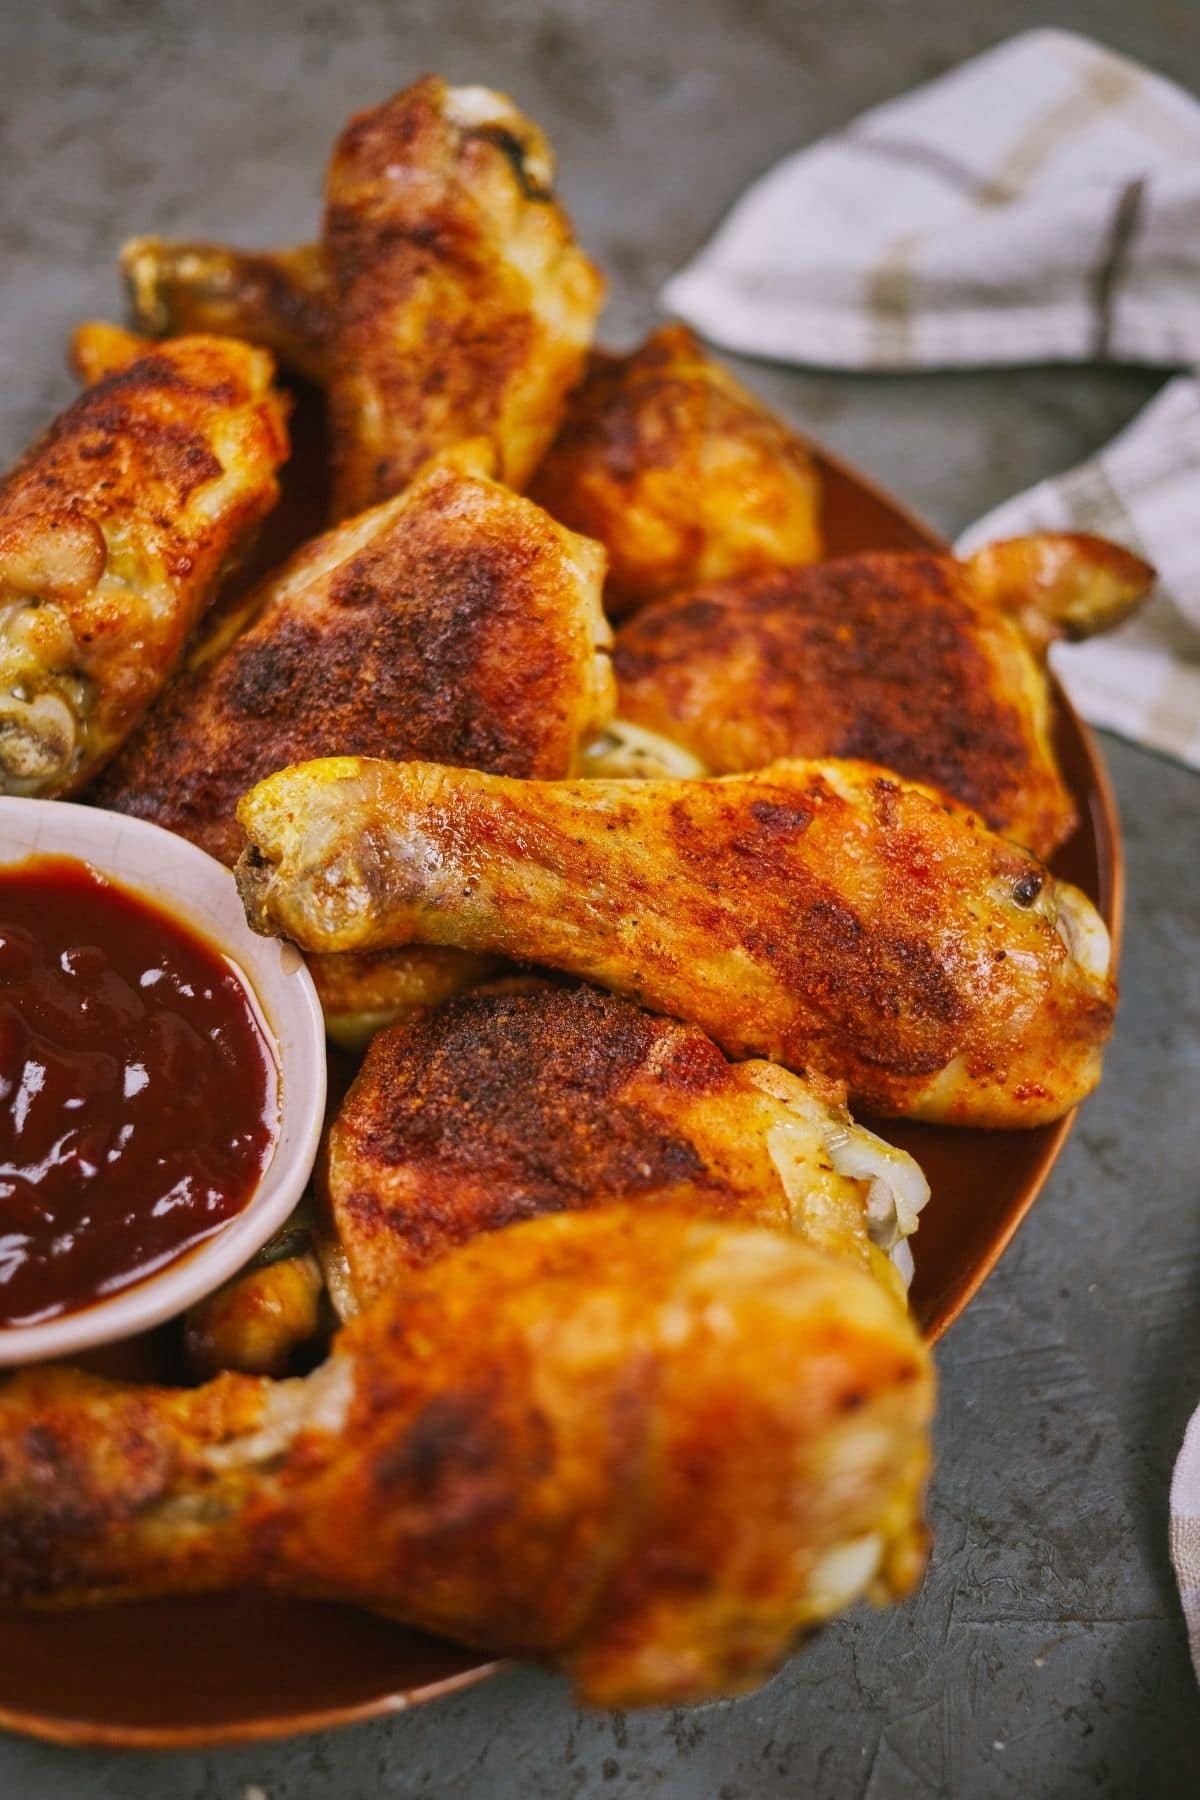 Cooked chicken on platter sitting on gray table